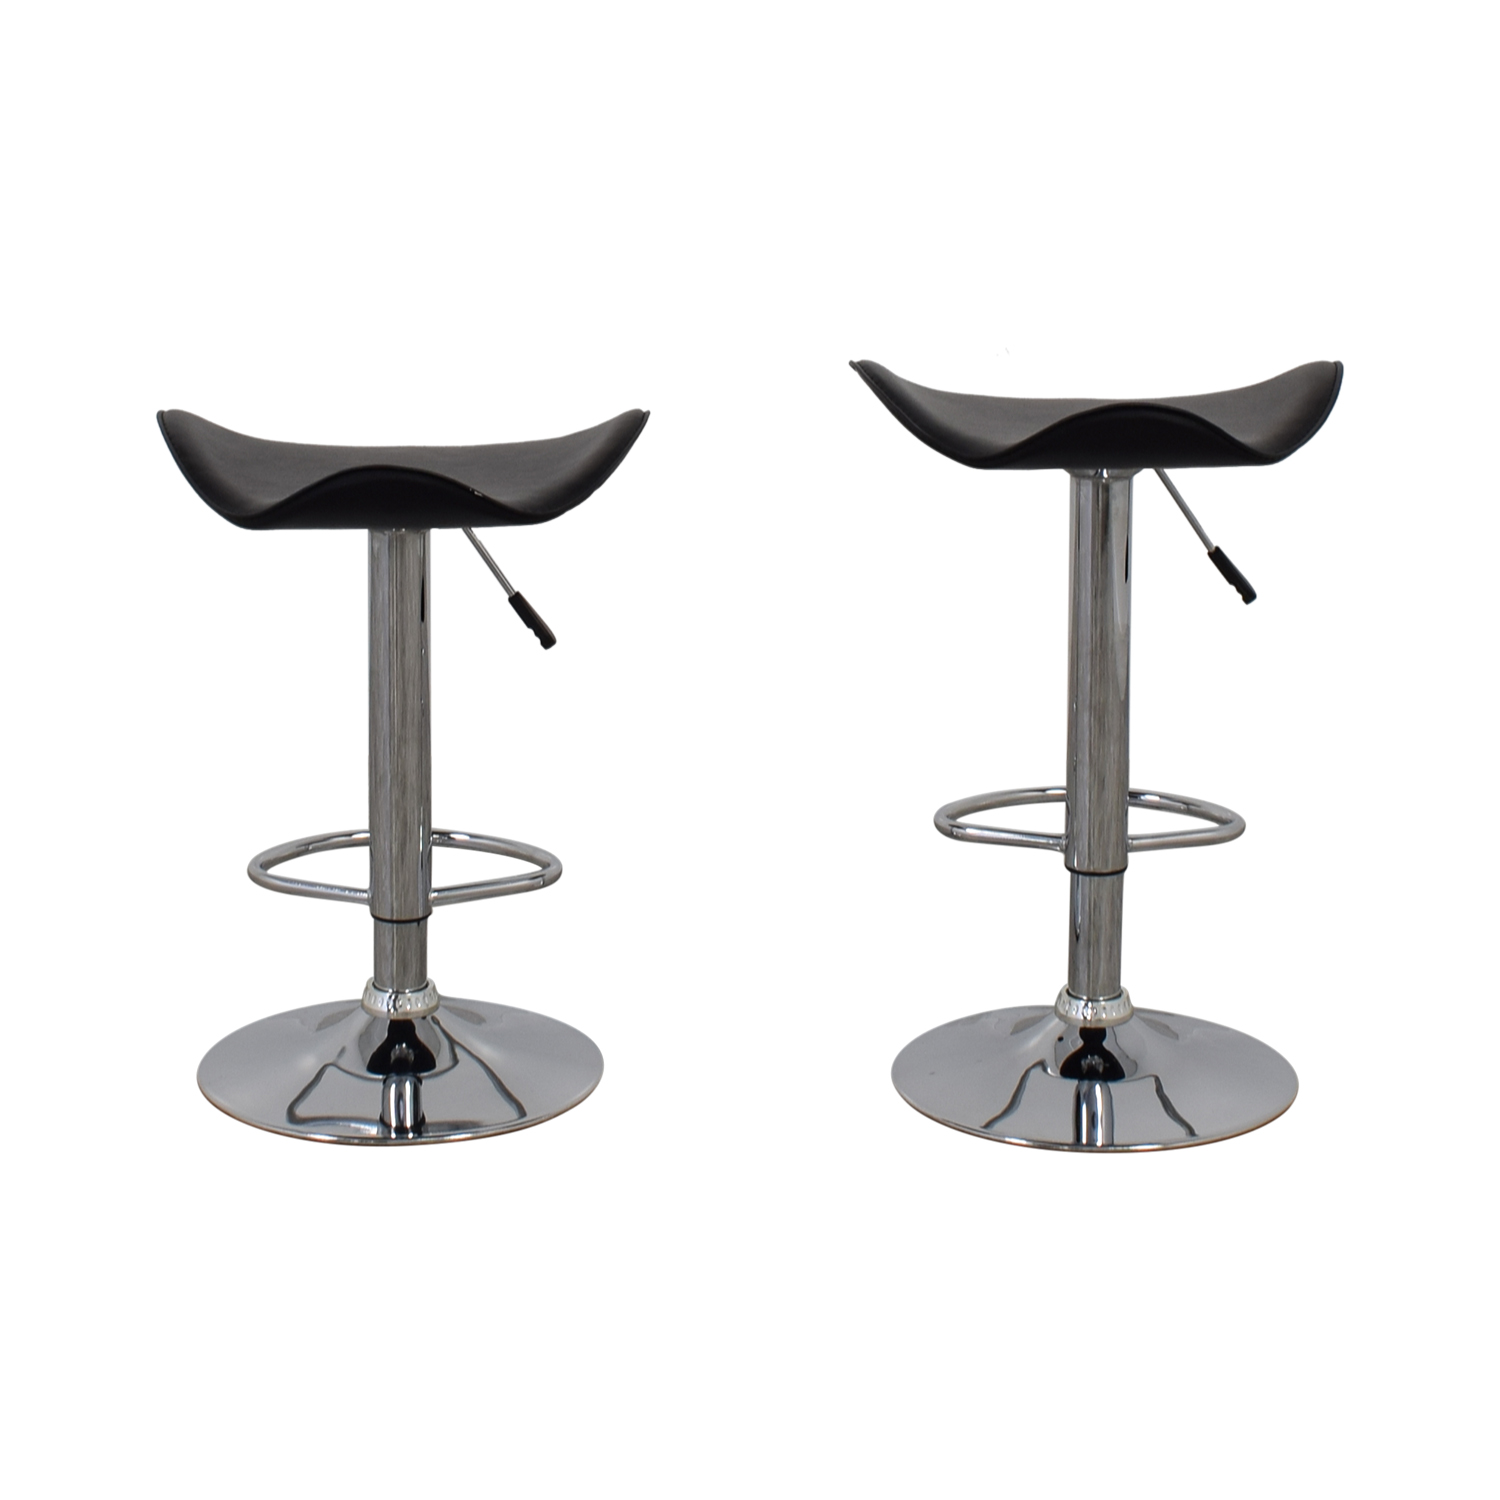 Fine 71 Off Black Leather And Chrome Adjustable Bar Stools Chairs Andrewgaddart Wooden Chair Designs For Living Room Andrewgaddartcom